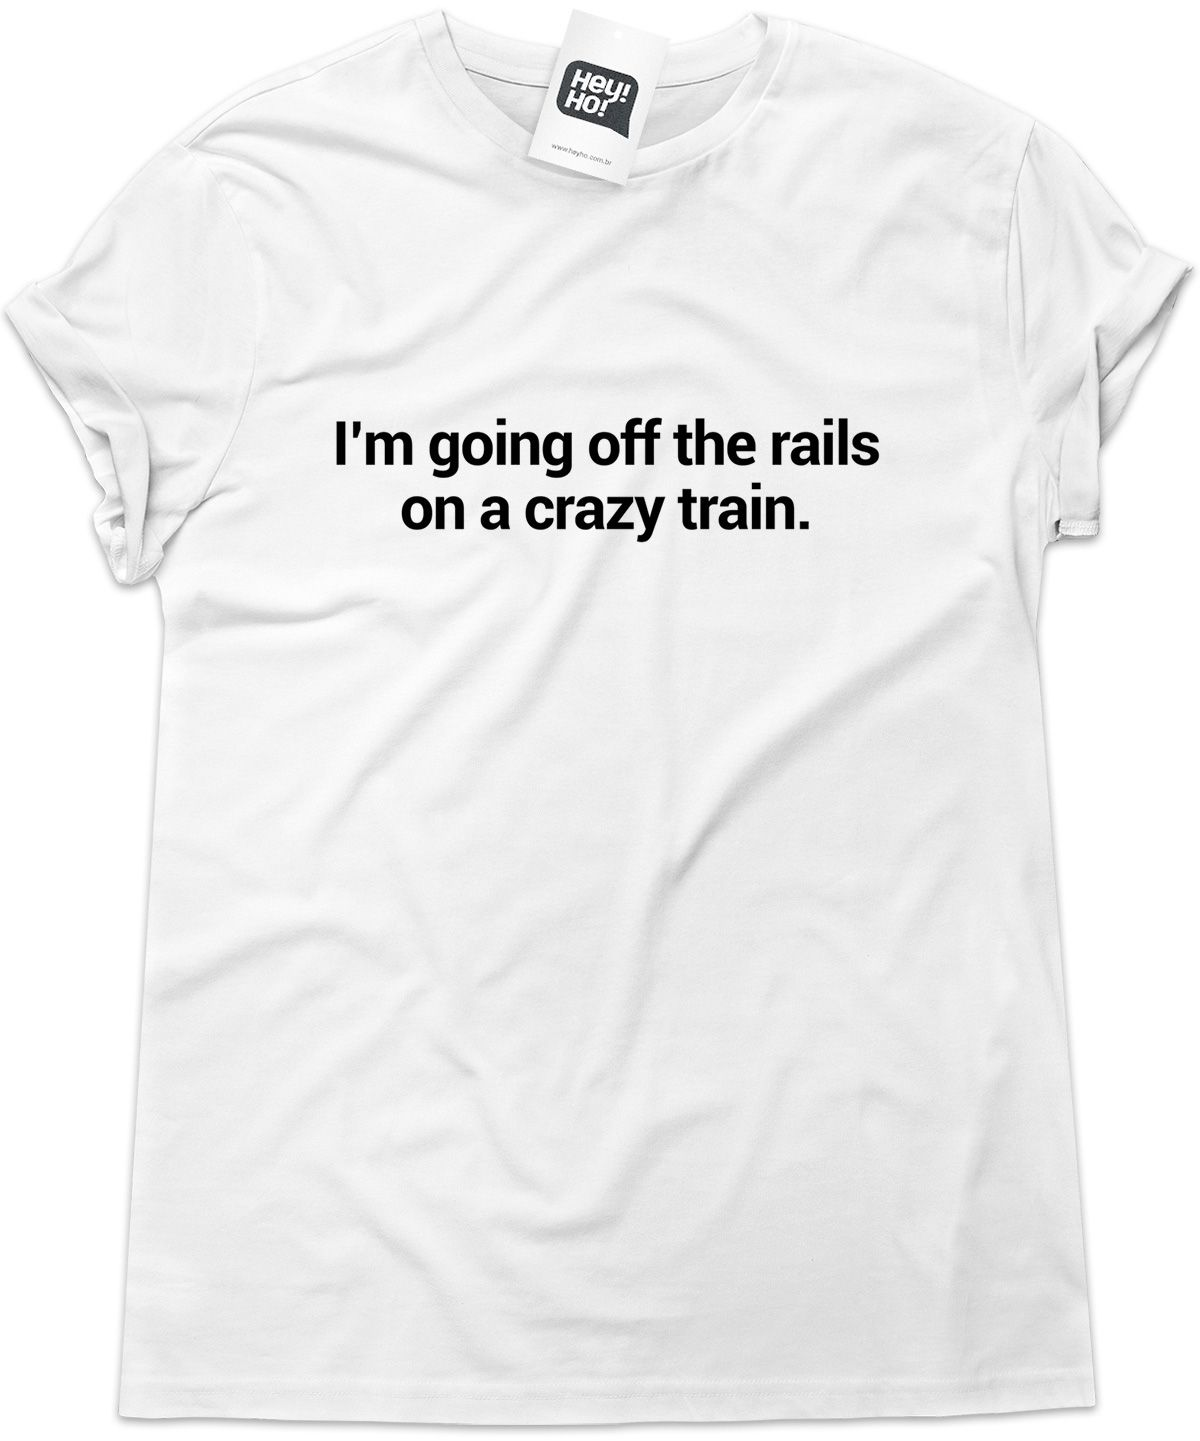 OZZY OSBOURNE - I'm going off the rails